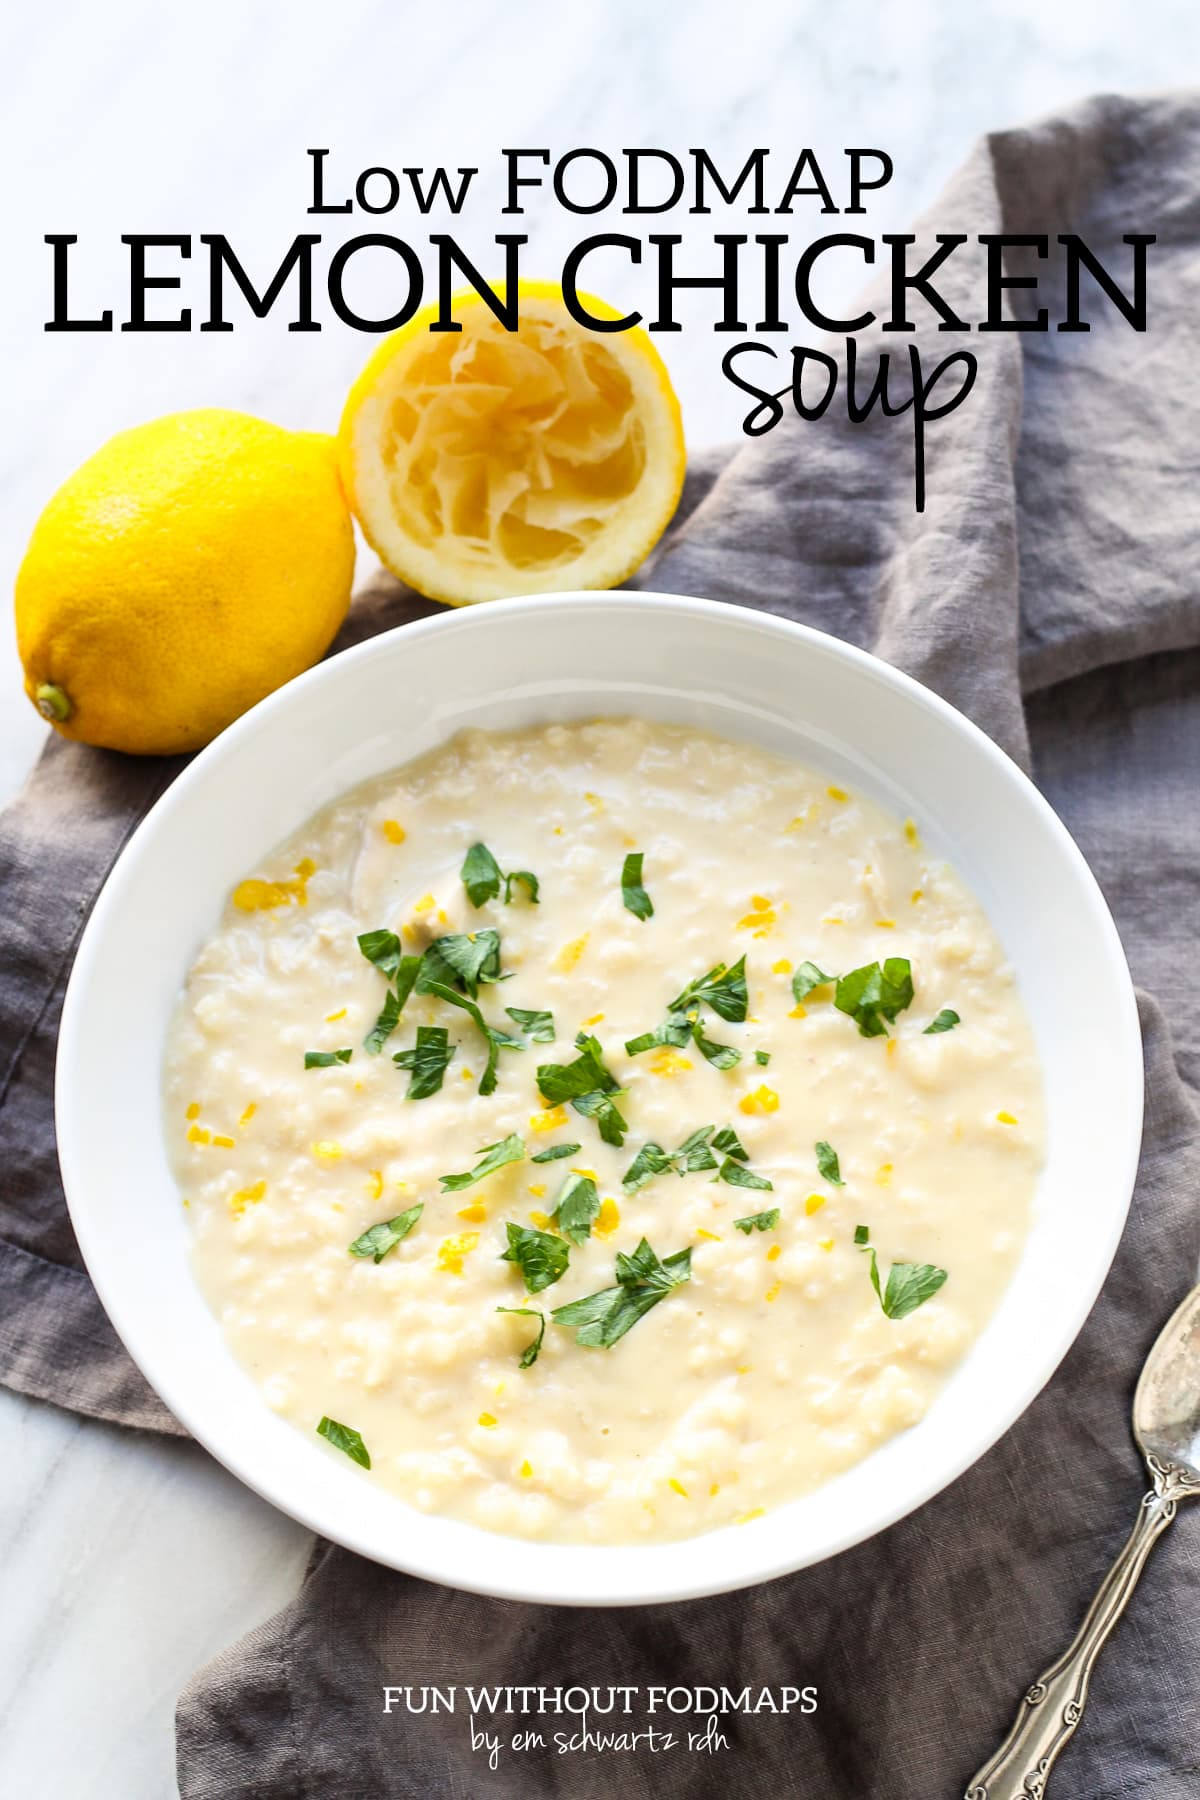 """Looking down at a bowl of lemony chicken and rice soup topped with fresh parsley and lemon zest. Above the soup, a black text overlay reads """"Low FODMAP Lemon Chicken Soup."""""""